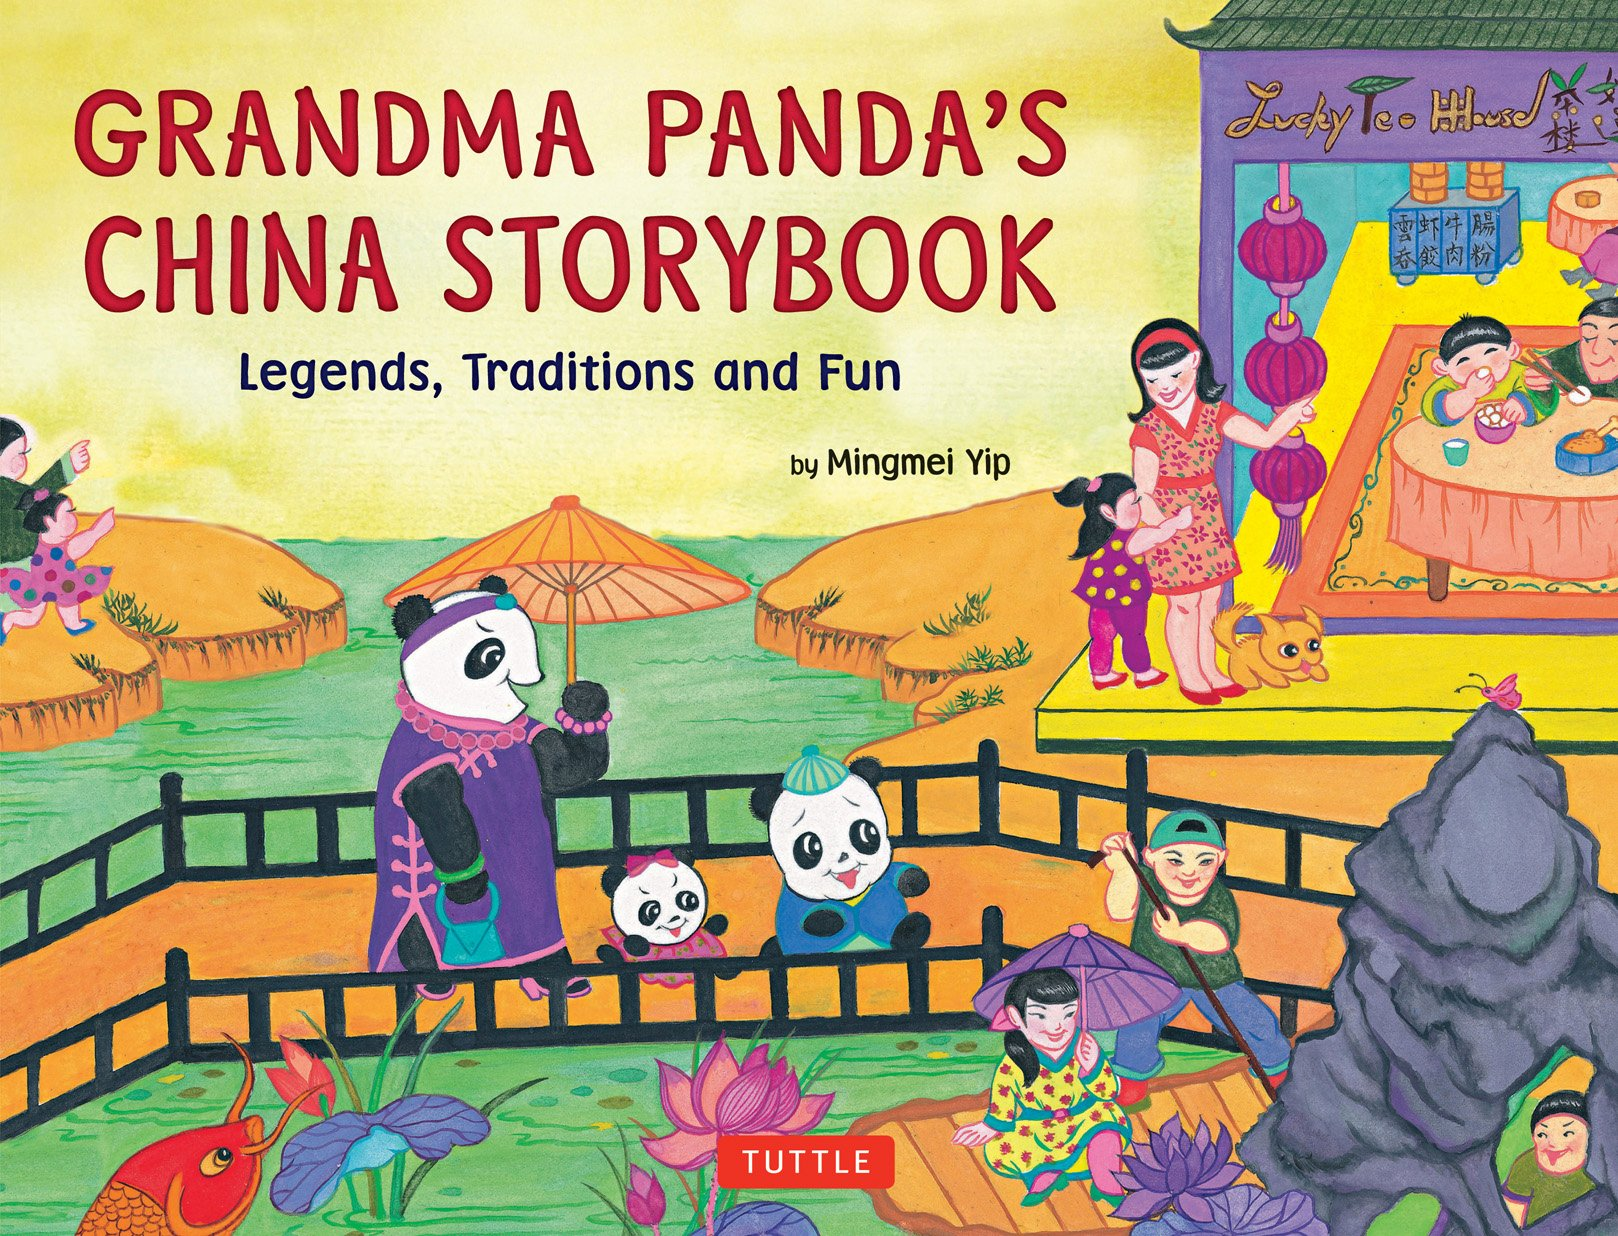 Grandma Panda's China Storybook: Legends, Traditions, and Fun ebook